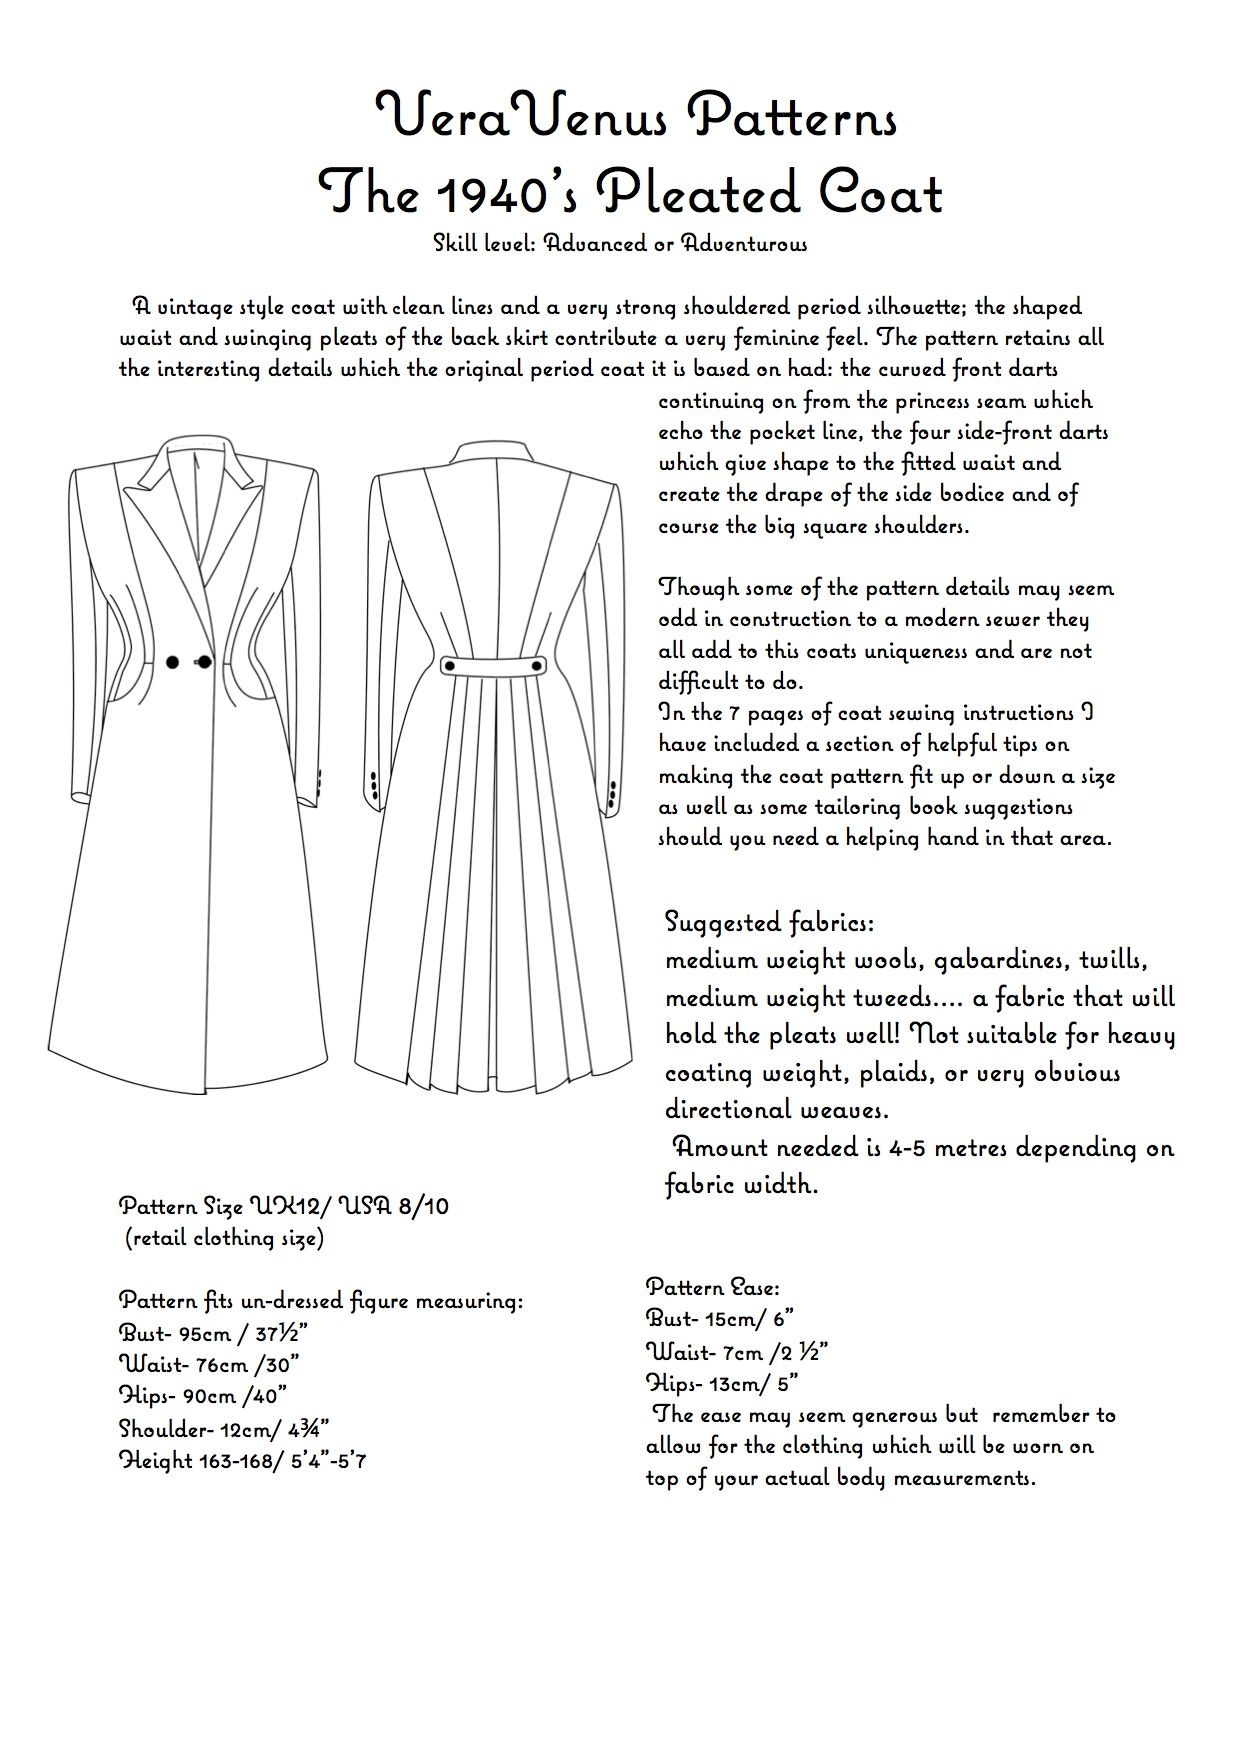 1940s coat pattern, general info | Sewing | Pinterest